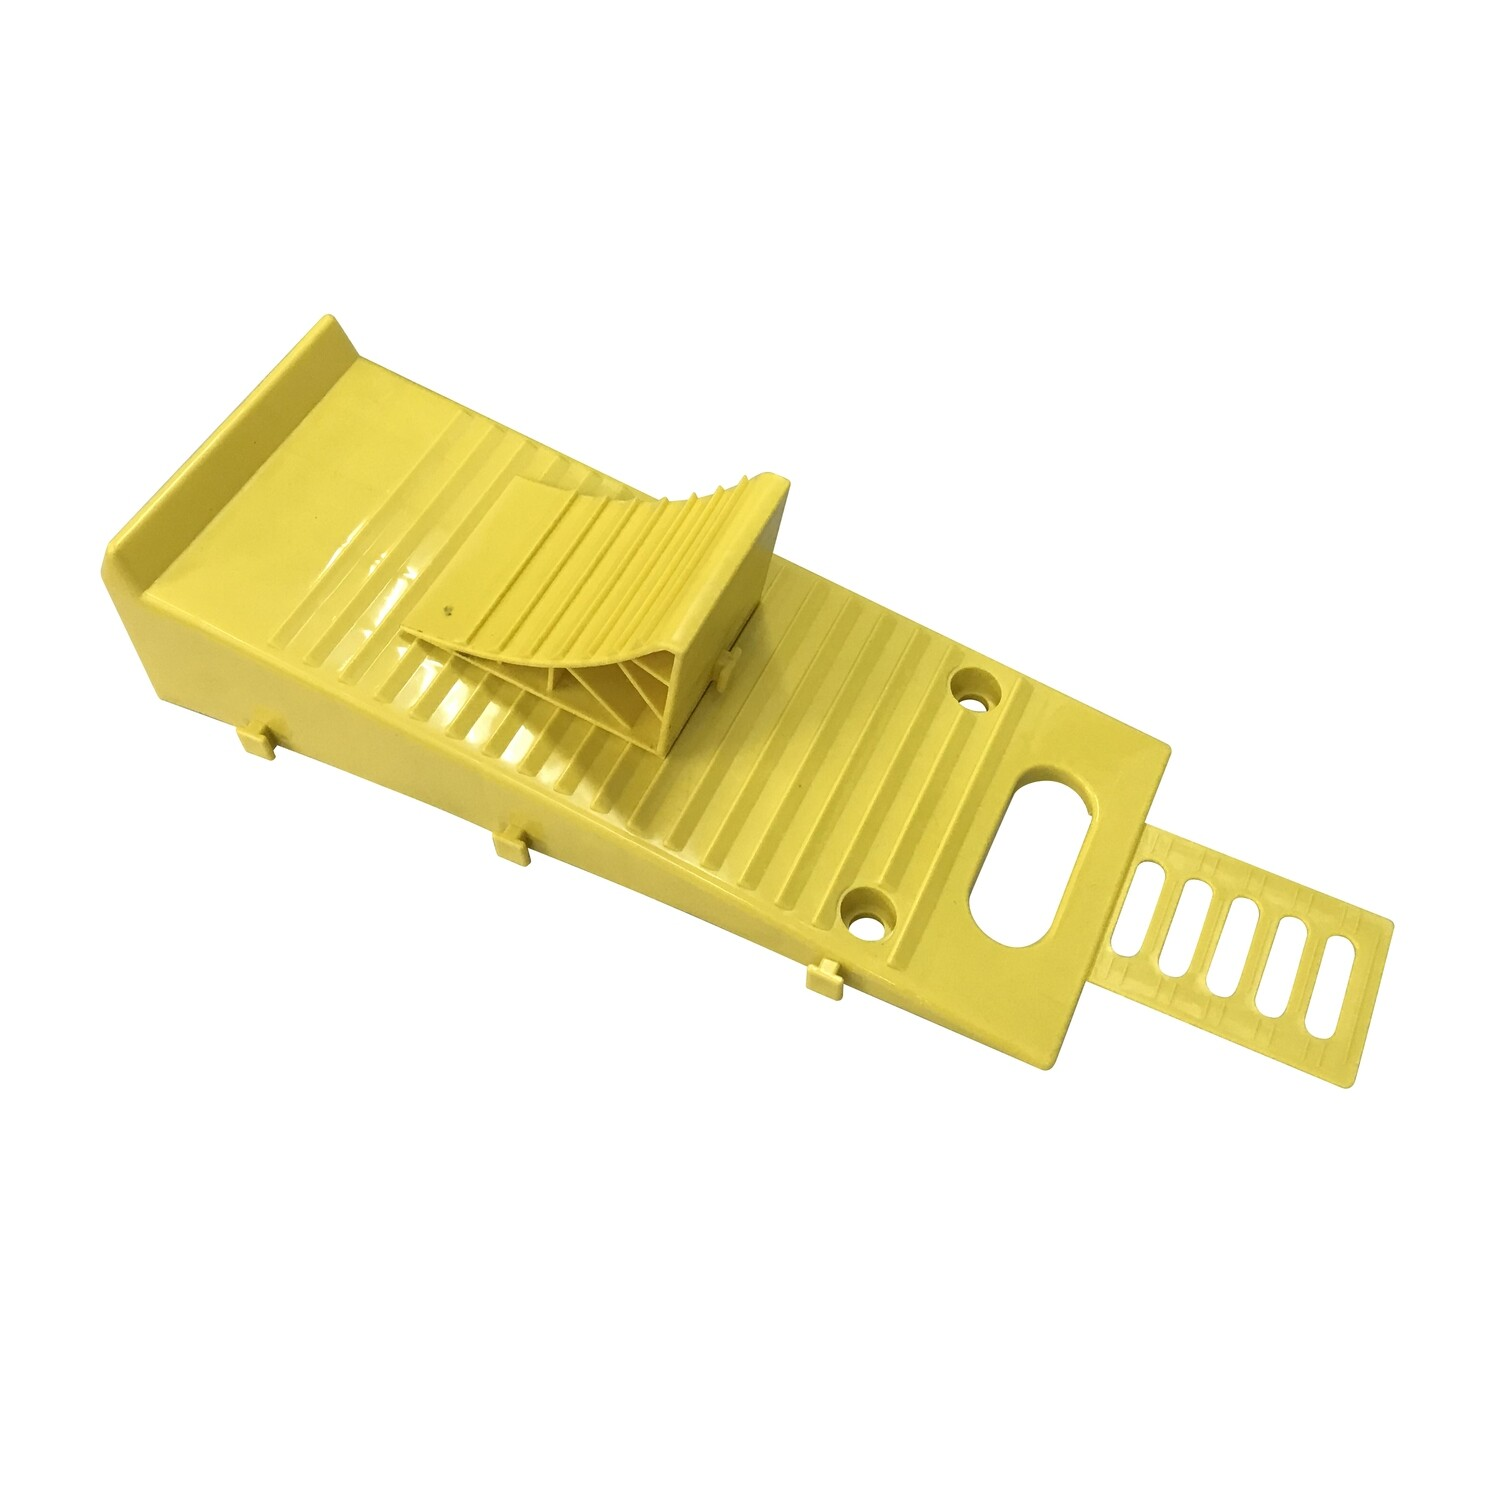 Single Axle RV Caravan Levelling Ramp Kit (Single)